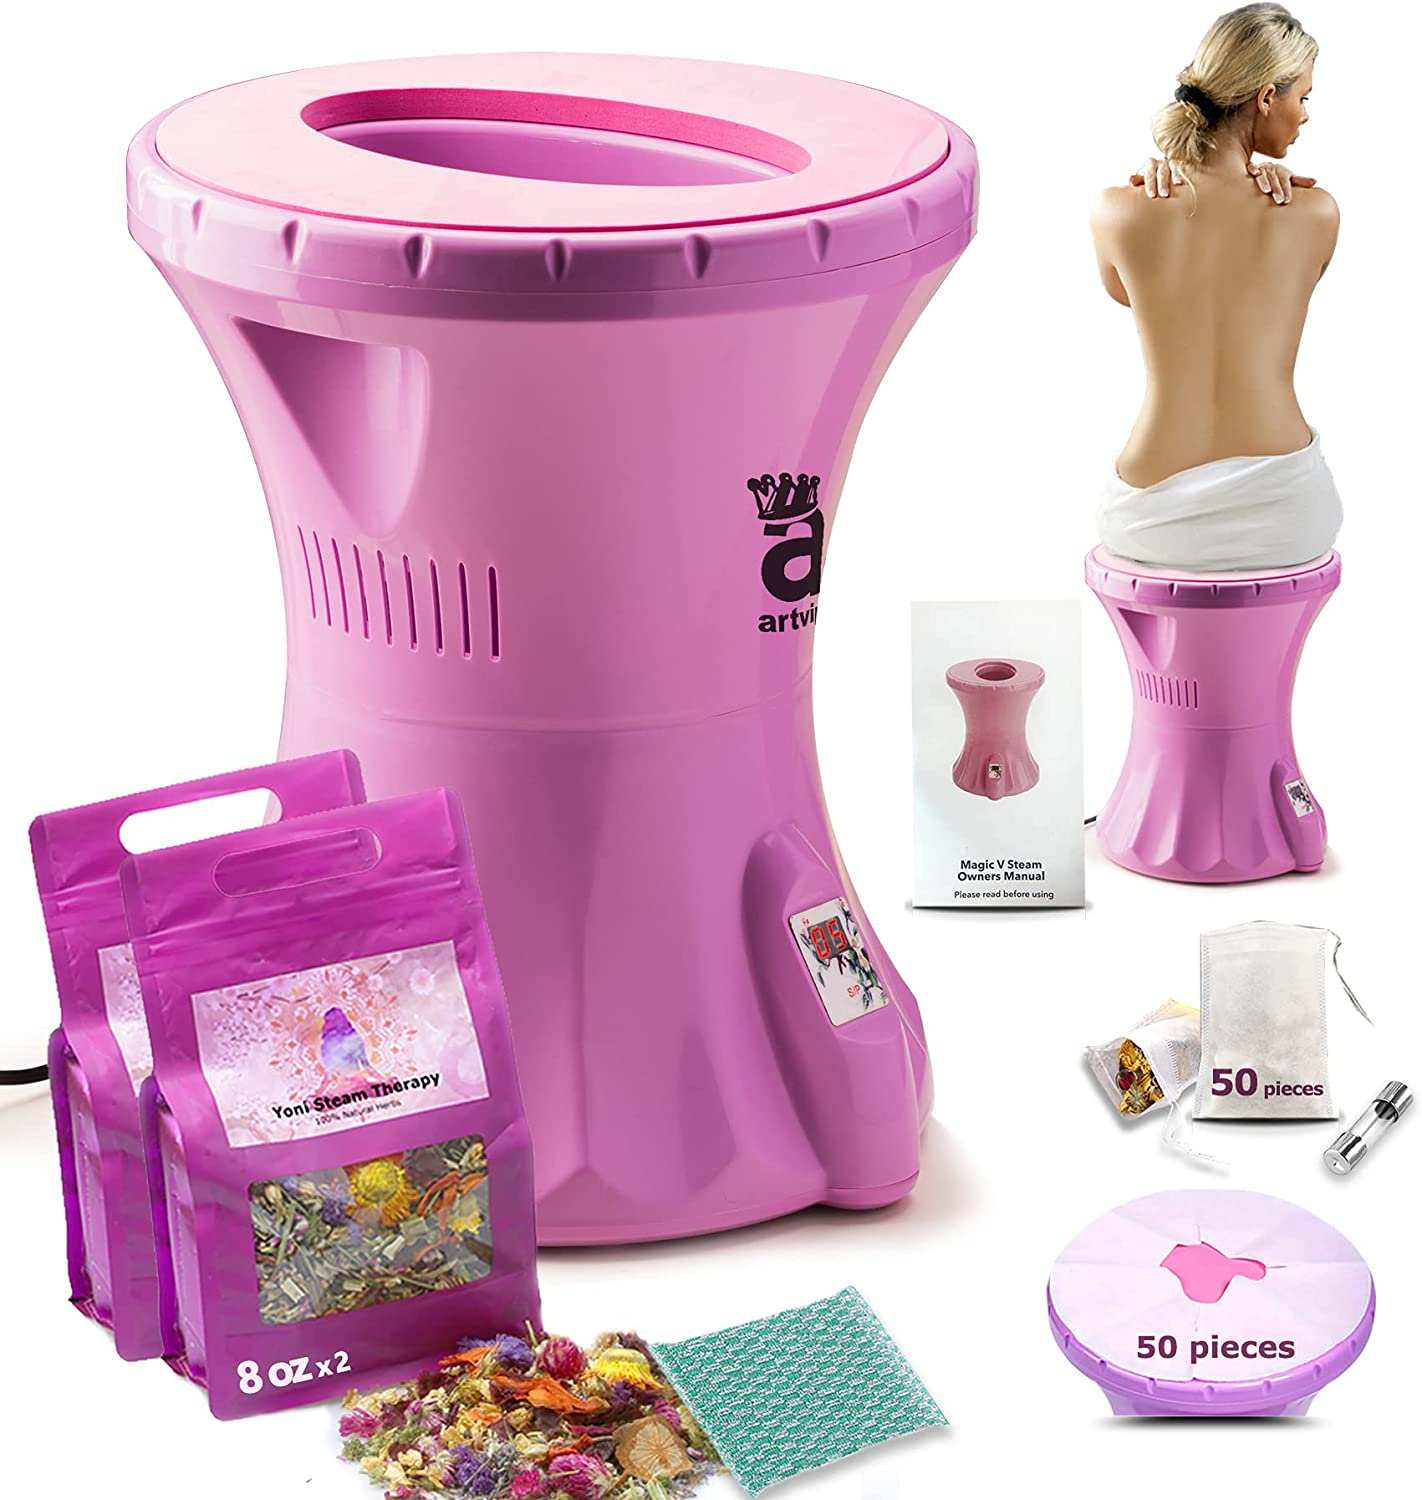 Yoni Steam Seat Upgraded, VSteamSeatKit with Herbs 16oz (30+Steams) Natural, Vaginal Steamer Chair Consistent Steaming, Portable Spa for Vaginal Cleansing, Tightening, Fertility and Postpartum Care